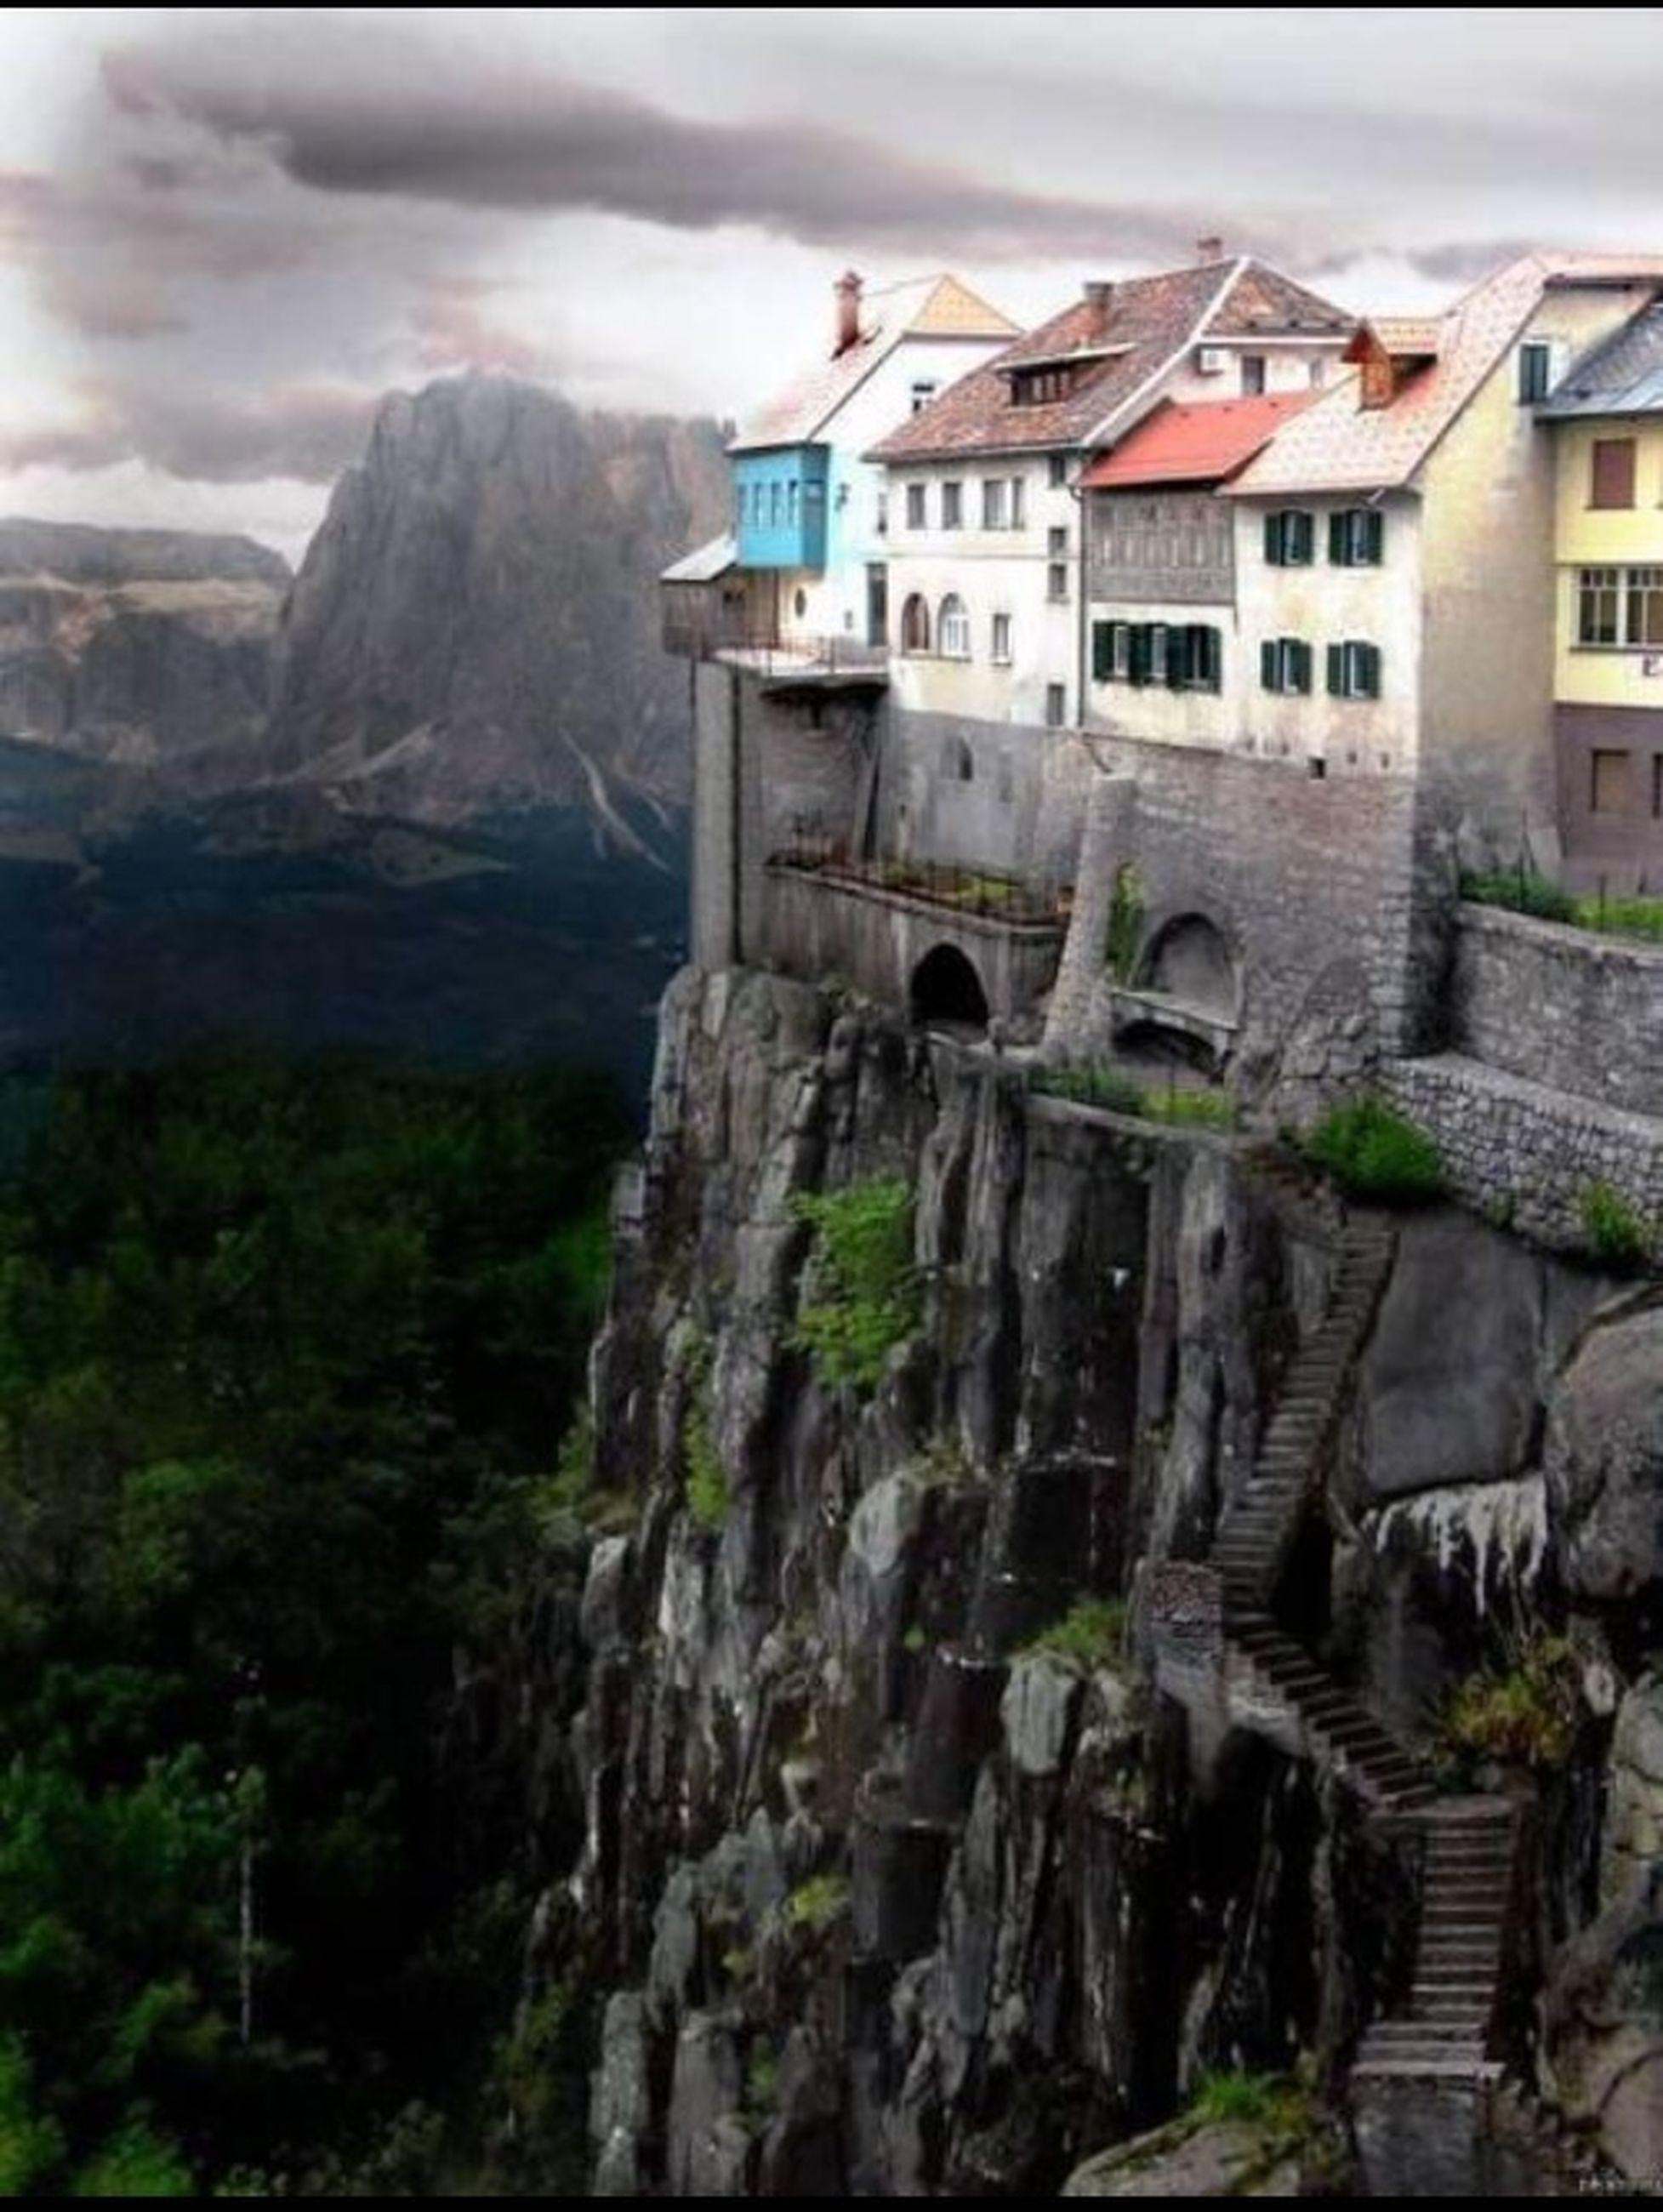 mountain, architecture, built structure, building exterior, sky, house, mountain range, rock - object, low angle view, railing, day, nature, outdoors, cloud - sky, rock formation, hill, no people, residential structure, rocky mountains, steps